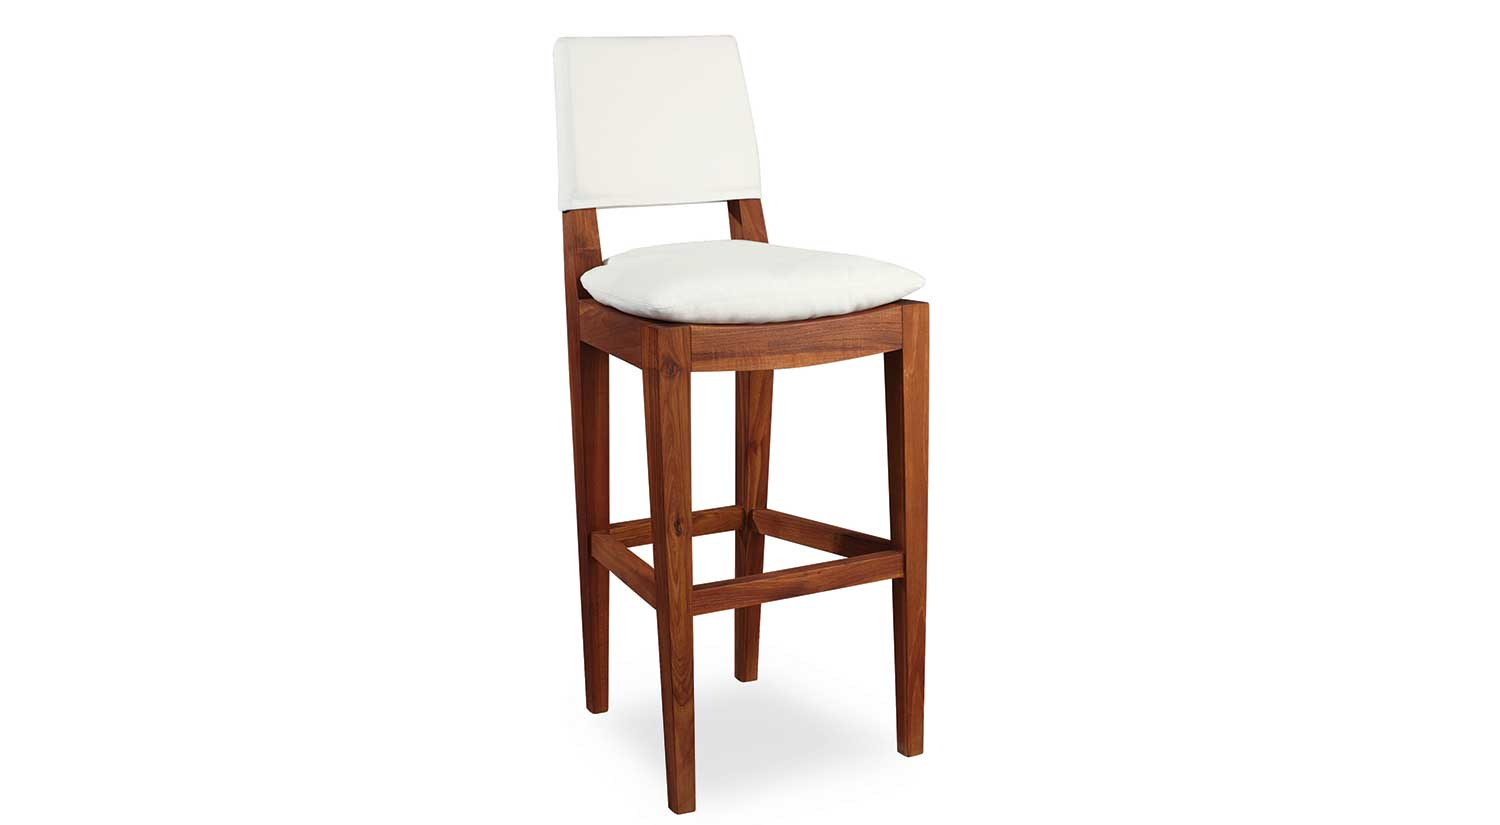 Dining counter and bar stools dining counter and bar stools teak outdoor bar stool